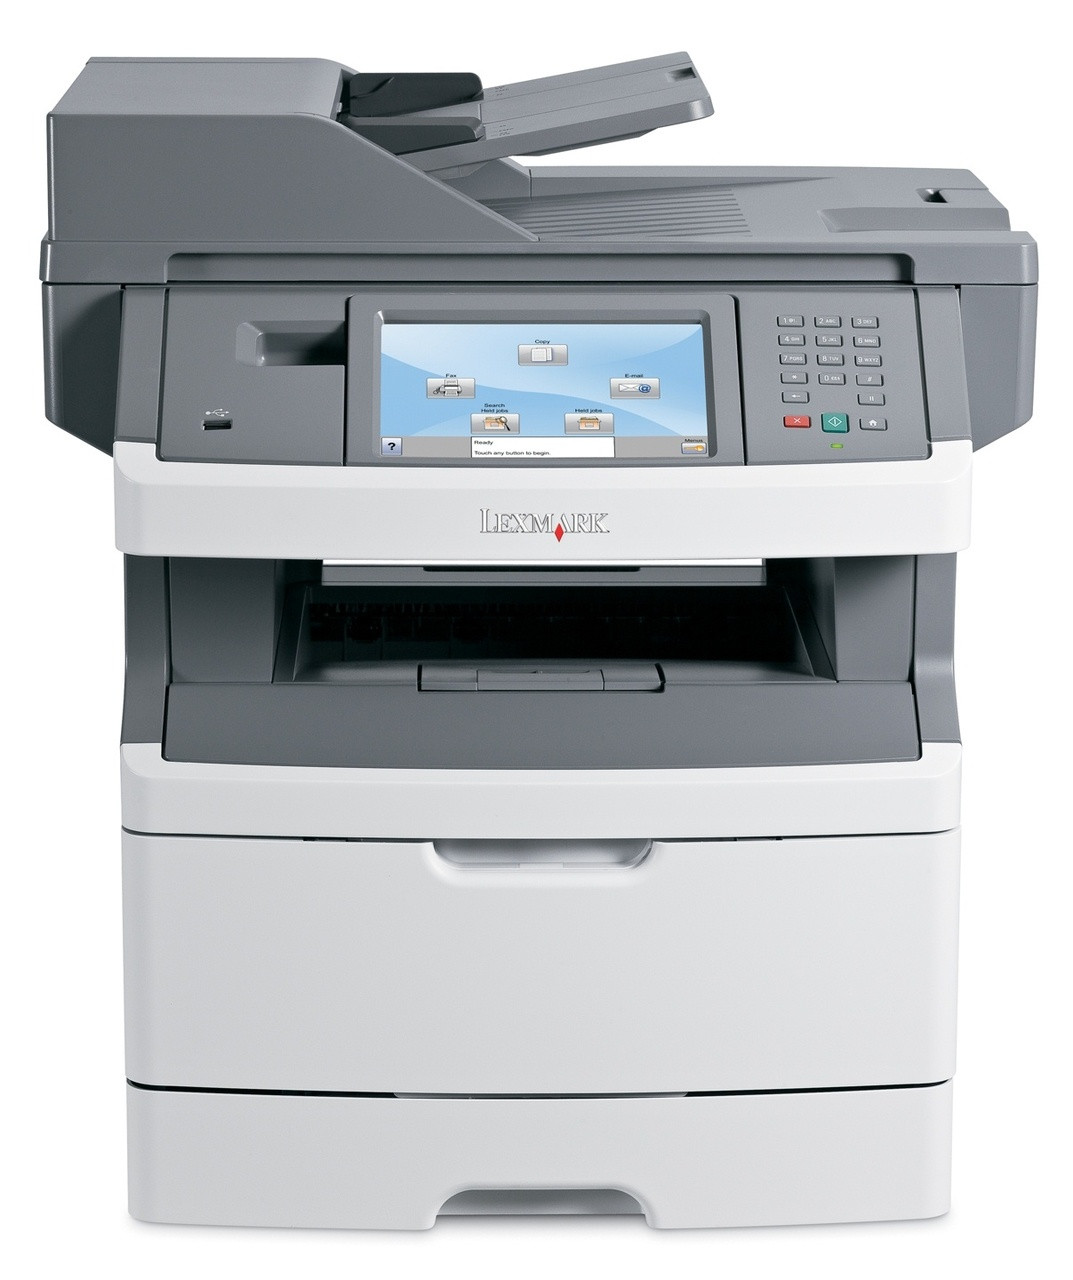 Lexmark x464de MFP - 13C0021 - Lexmark Laser Printer for sale